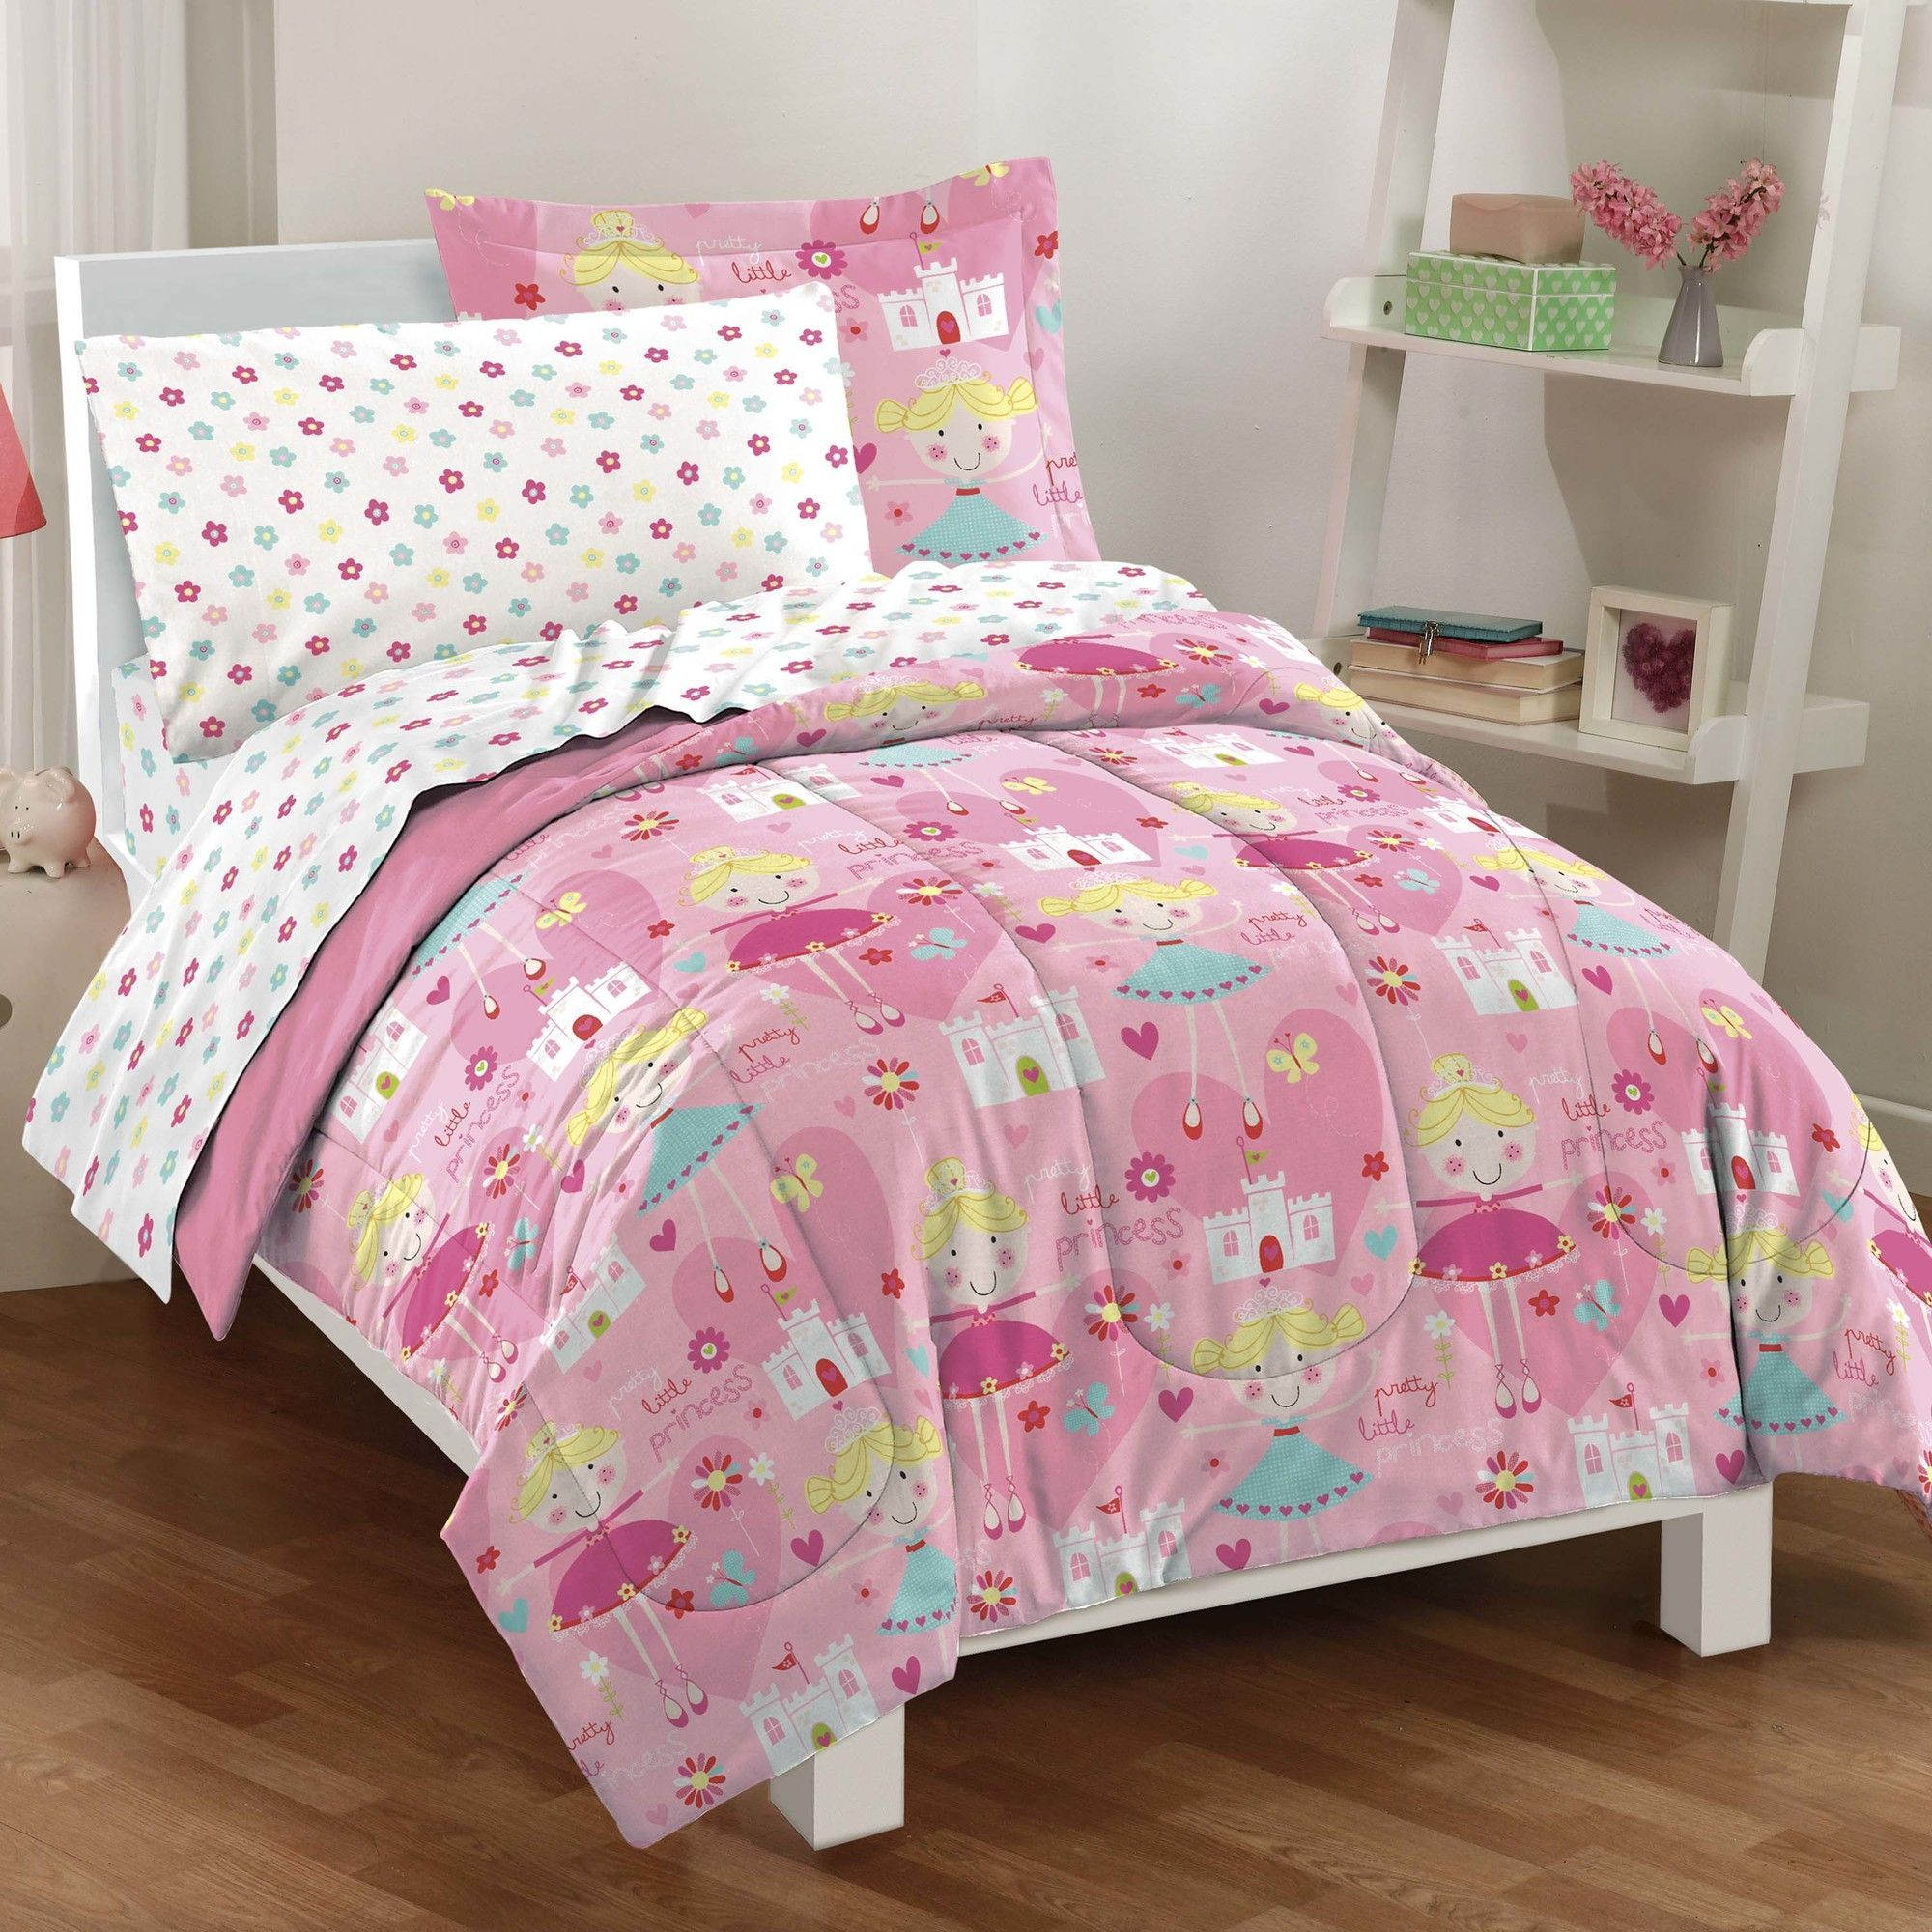 zipit bag ta fantasy together bedroom set by in a clovers stripes bed lovable single dorm as mattresses also special shark girl intriguing pink ar home with college guest along bedding irresistible decorations forest zippered for side plus comforter pockets kids